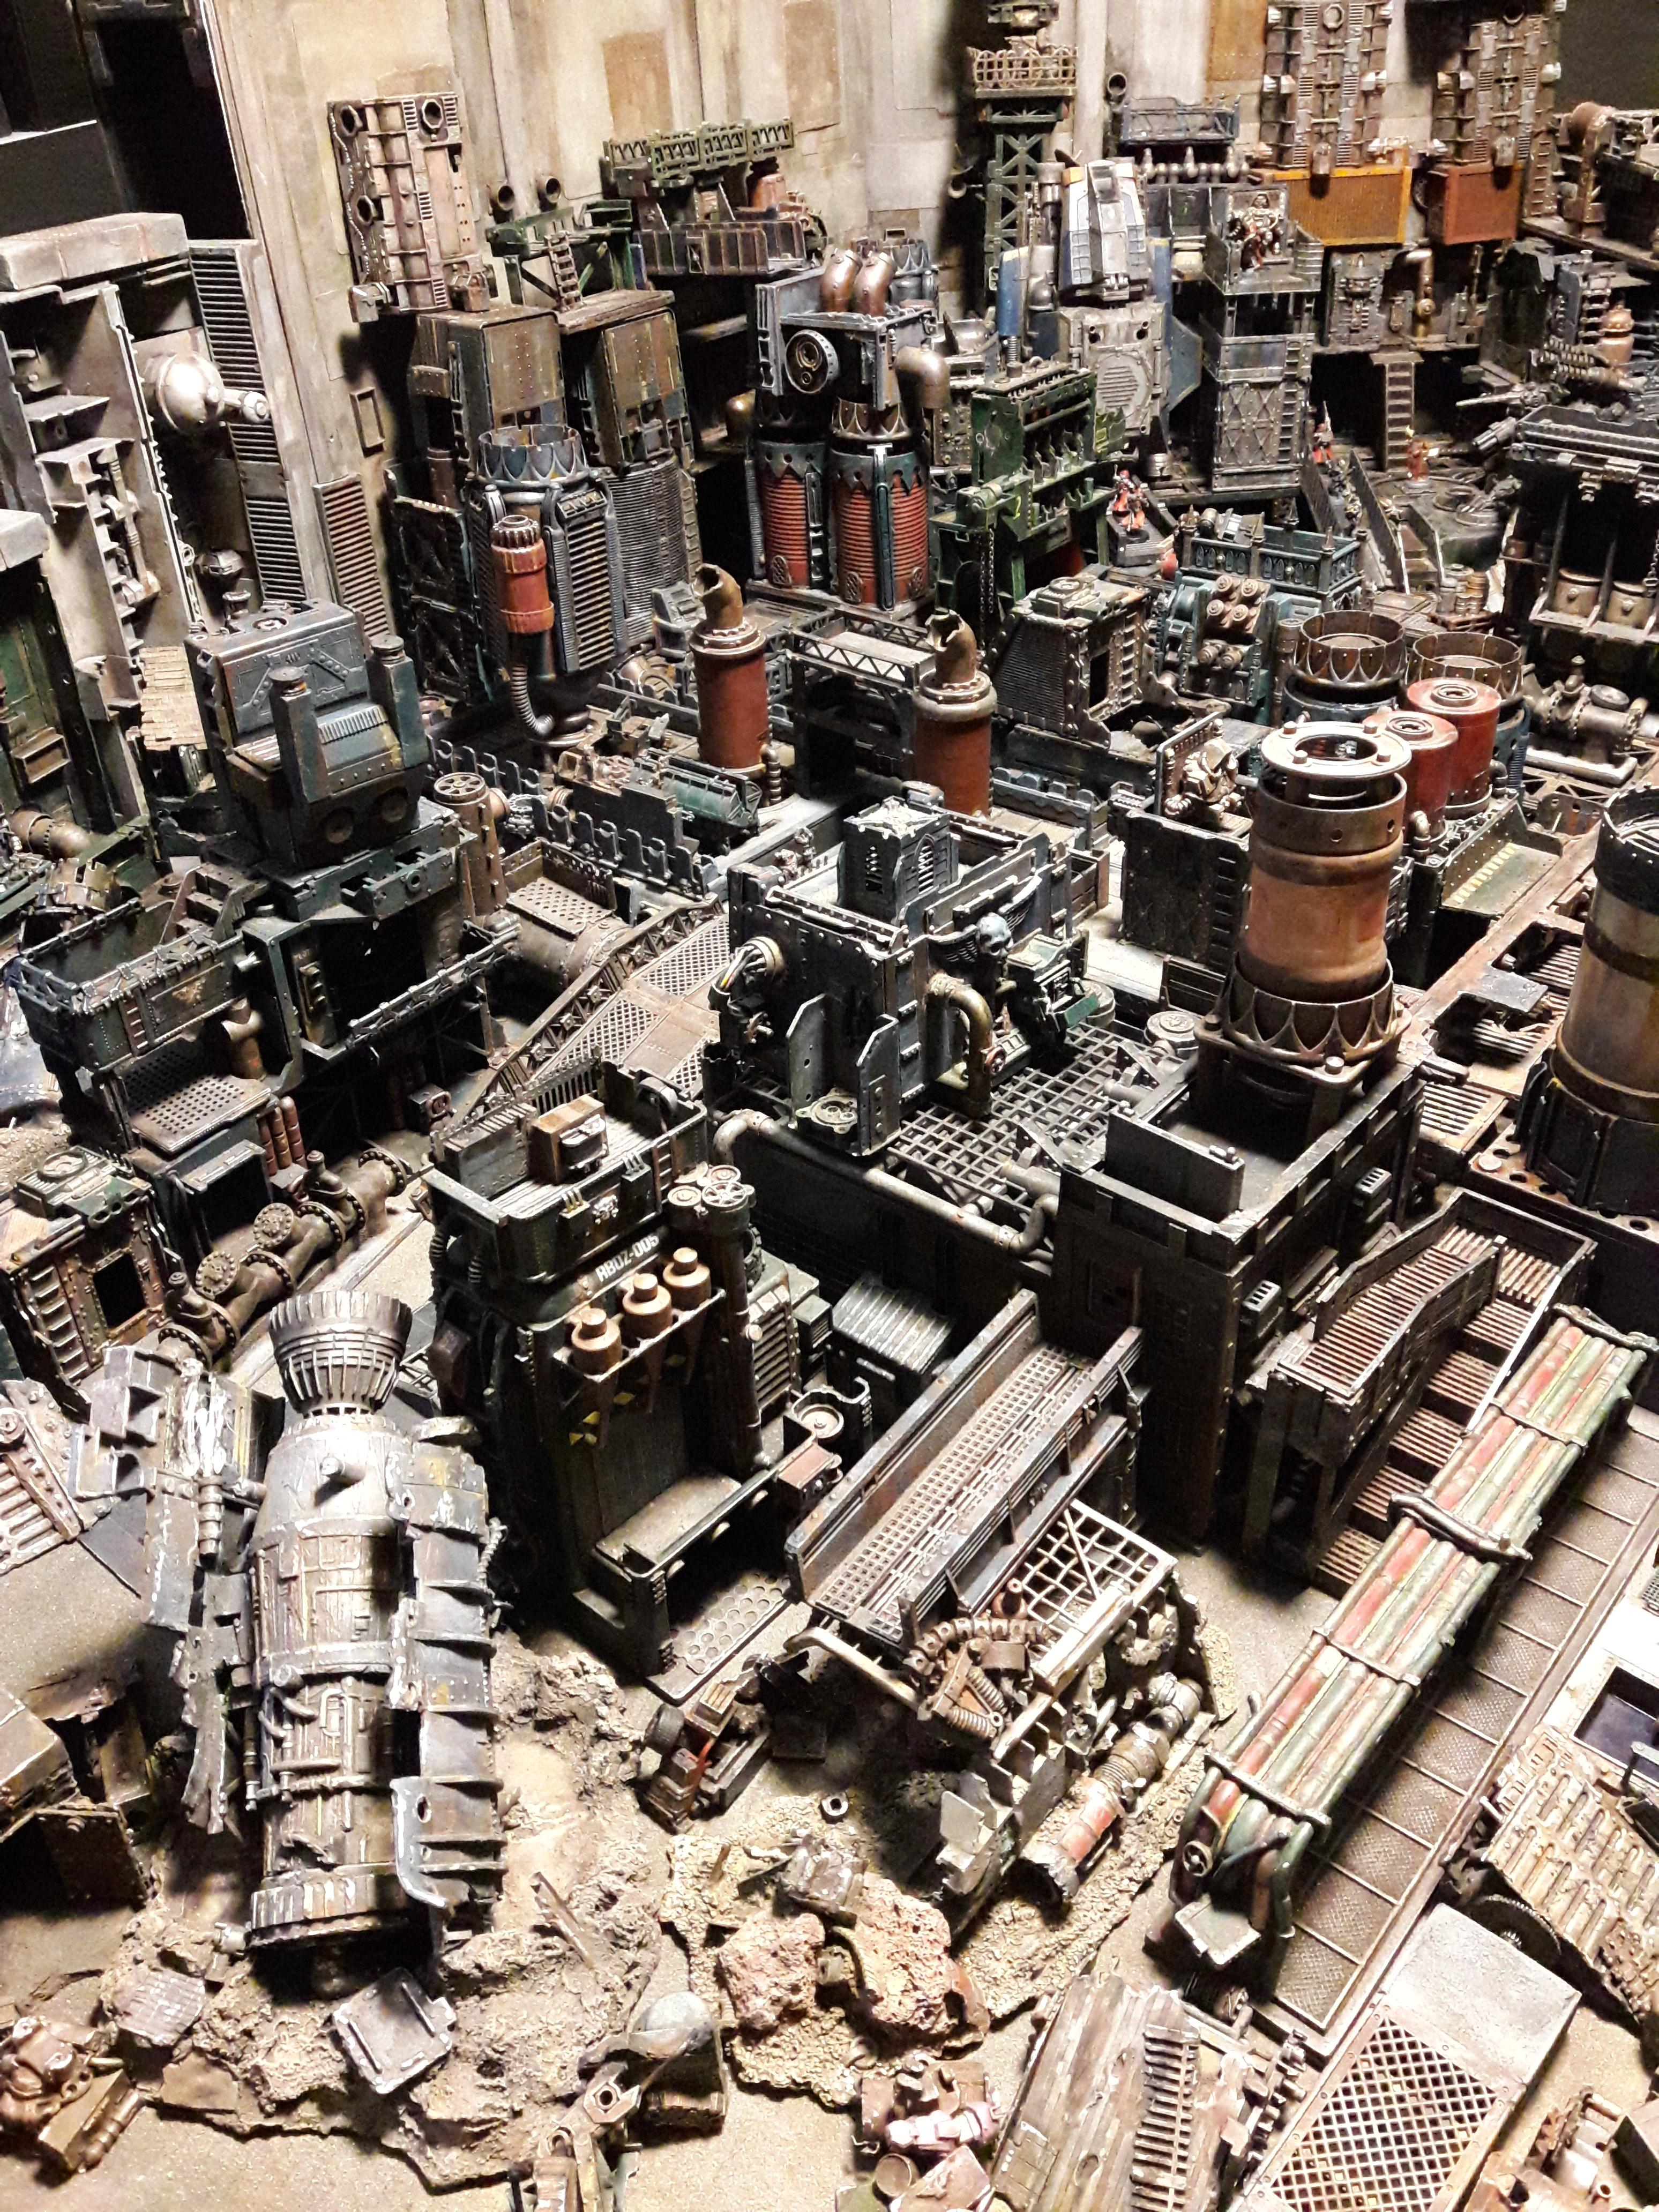 Forge World, Industrial, Minis, Rogue Trader, Rpg, Terrain